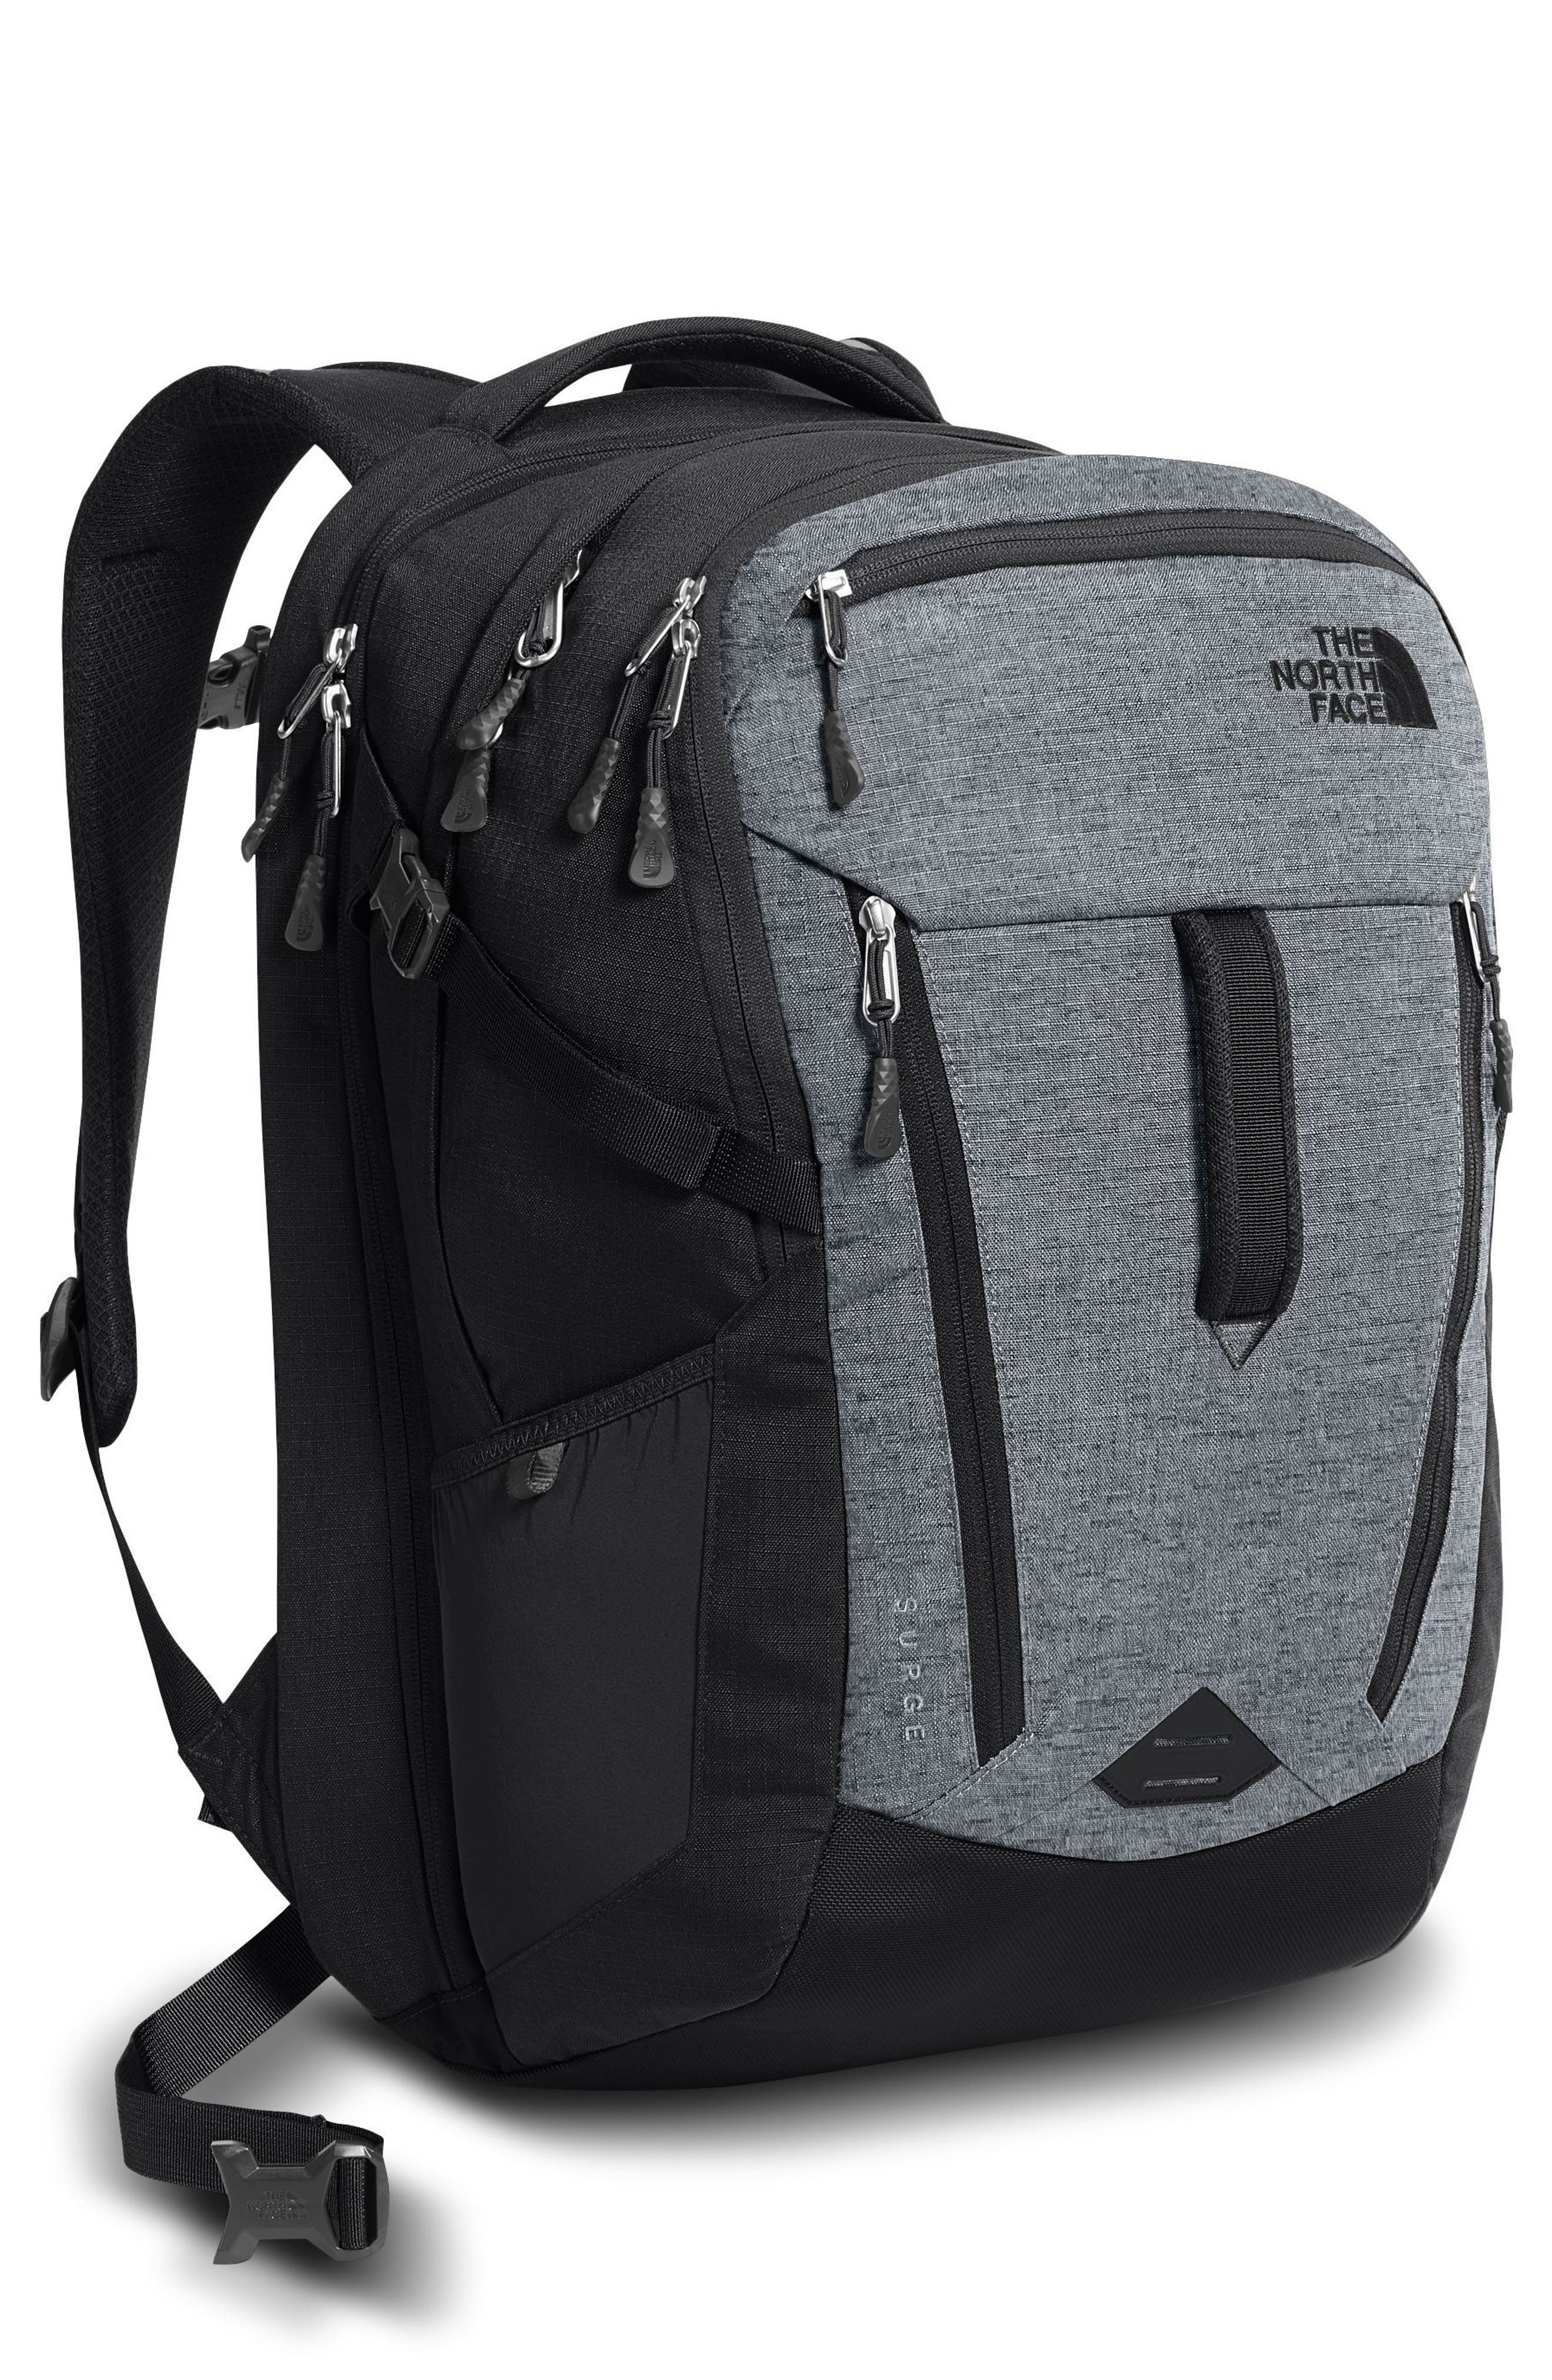 Alternate Image 1 Selected - The North Face 'Surge' Backpack